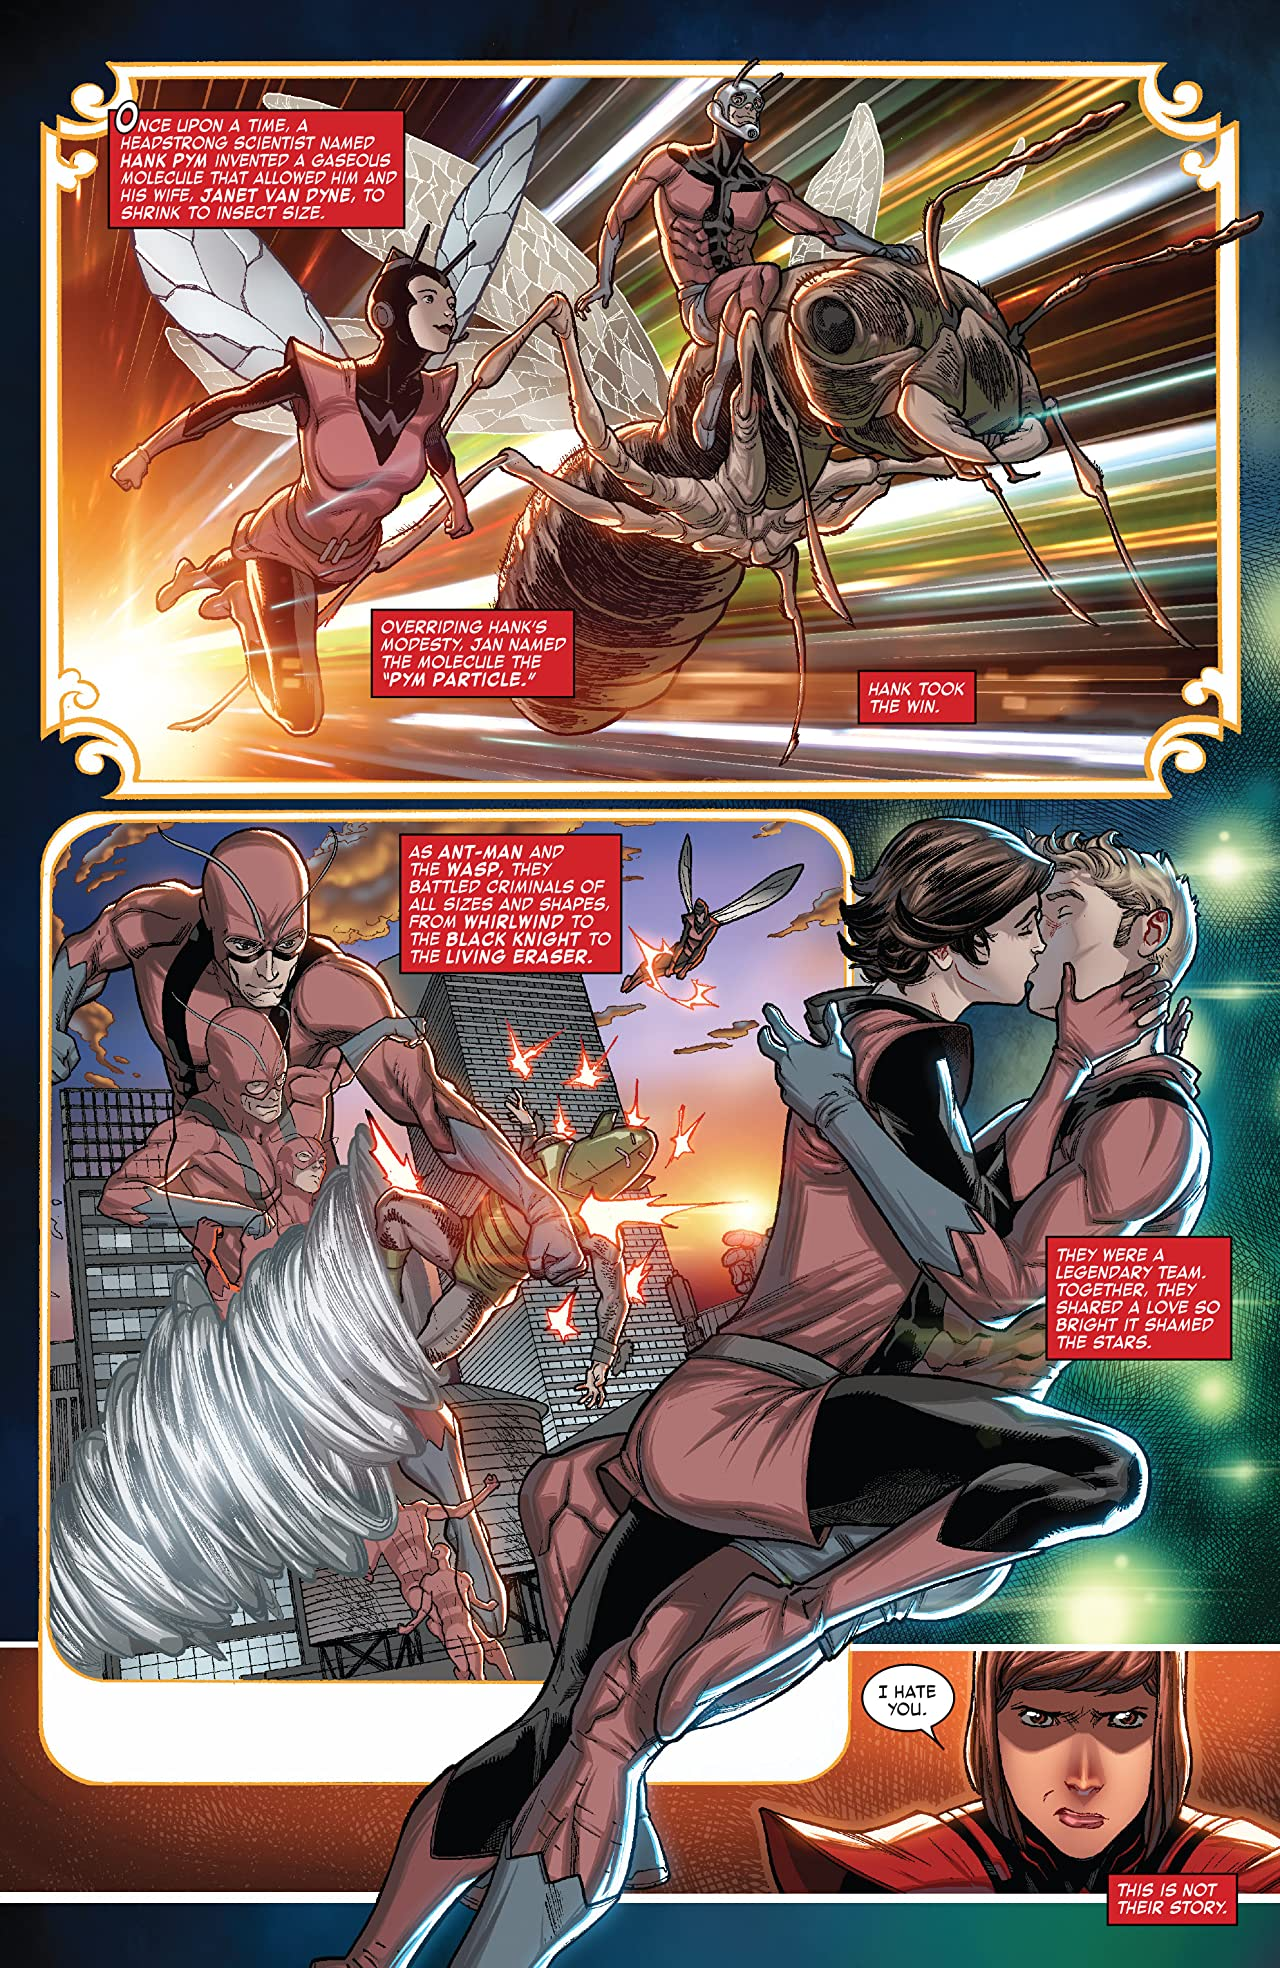 Ant-Man & The Wasp (2018) #1 (of 5)